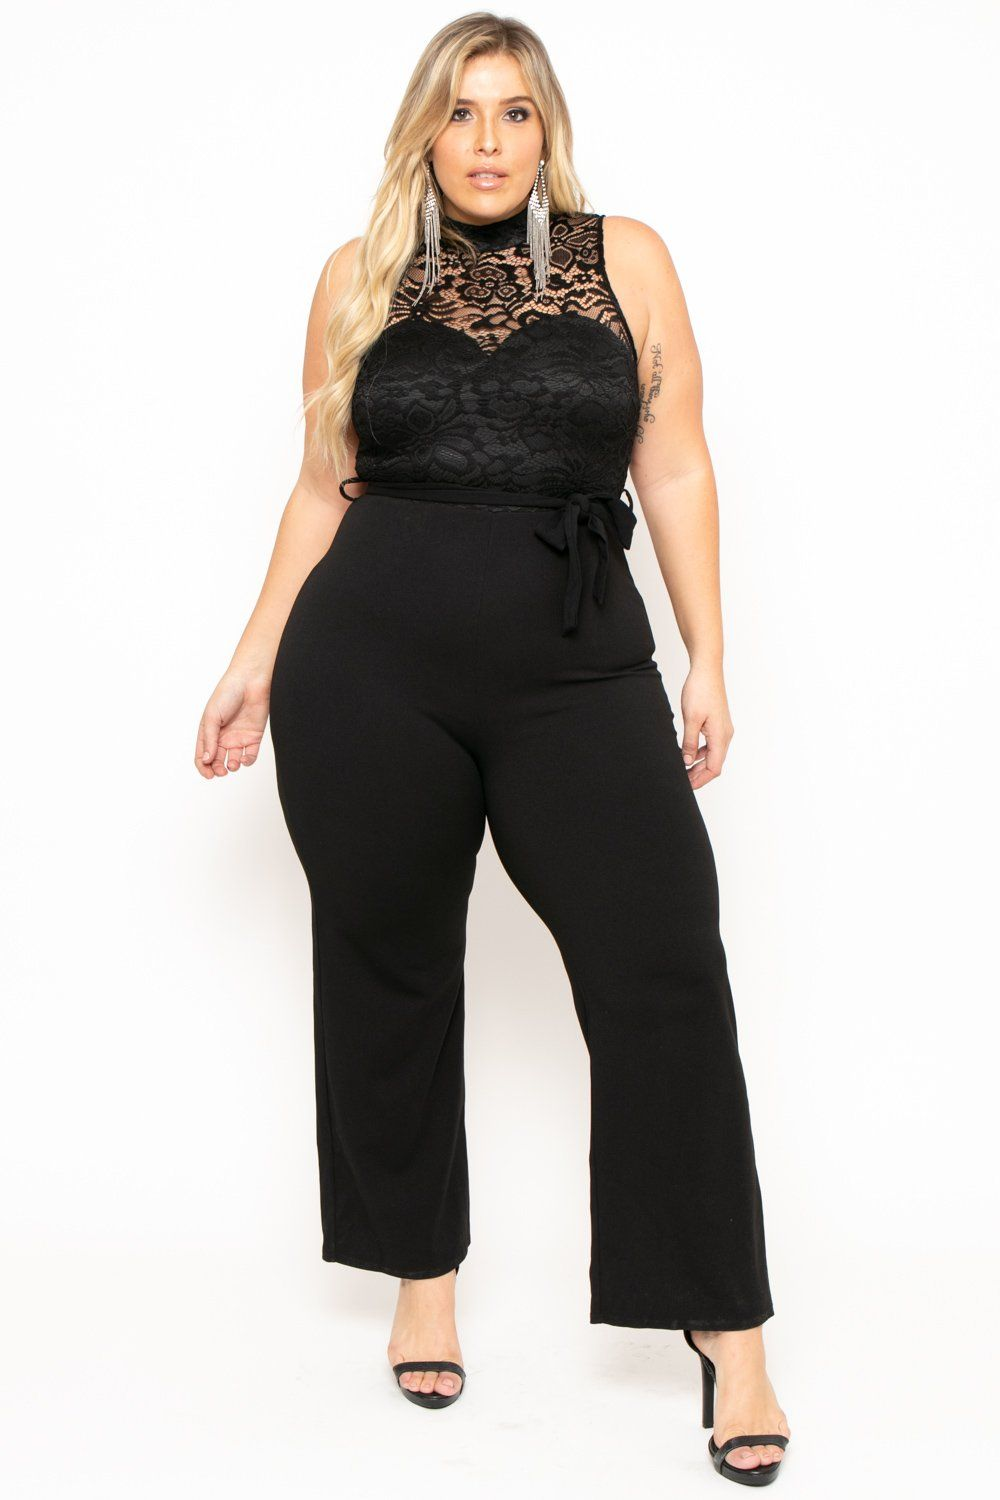 ec9ffb3fb68 Plus Size Mock Neck Lace Top Jumpsuit - Black – Curvy Sense